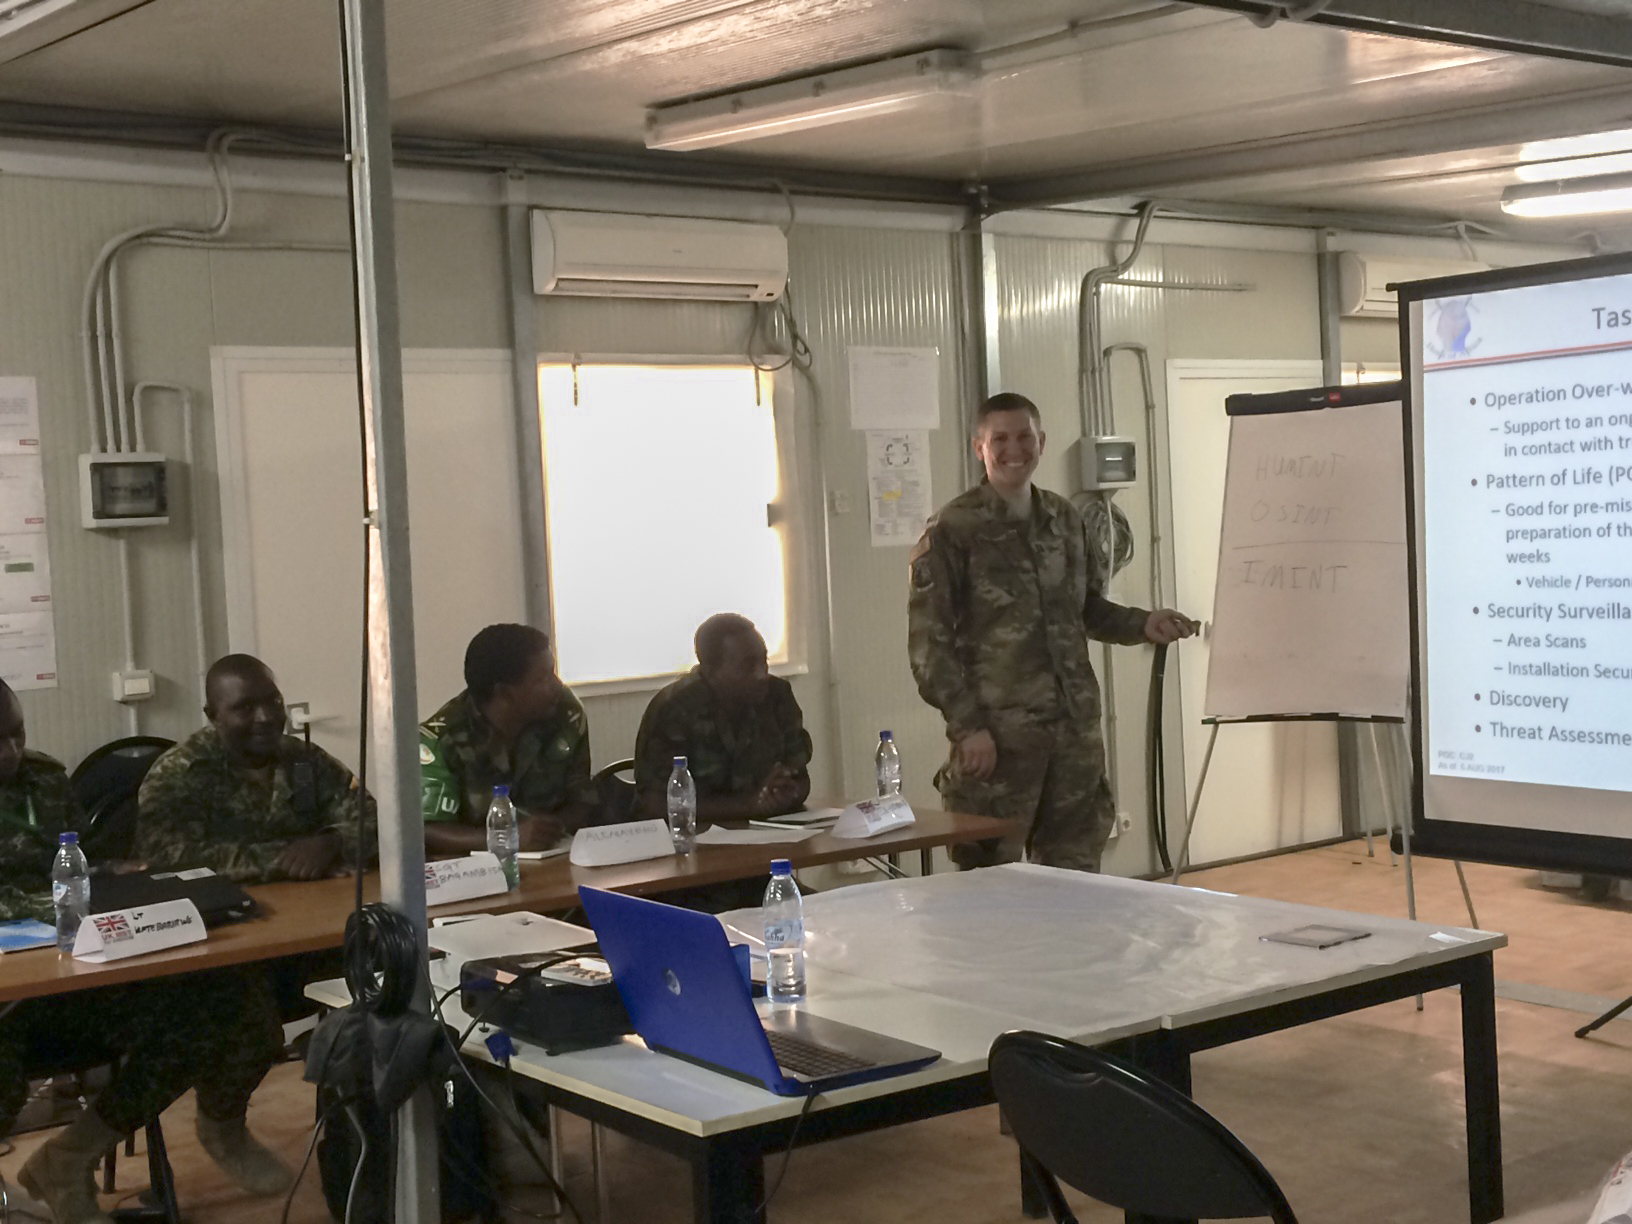 U.S. Air Force Capt. Brian Hurt, Combined Joint Task Force-Horn of Africa Intelligence Directorate collection manager, instructs a class during an intelligence, surveillance and reconnaissance (ISR) course in Mogadishu, Somalia, Aug. 7, 2017. Soldiers from five countries supporting African Union Mission in Somalia are taking the British-led ISR course to improve their intelligence-gathering capabilities in the fight against violent extremist organizations like al-Shabaab in East Africa. (Photo courtesy U.S. Air Force Capt. Brian Hurt/Released)